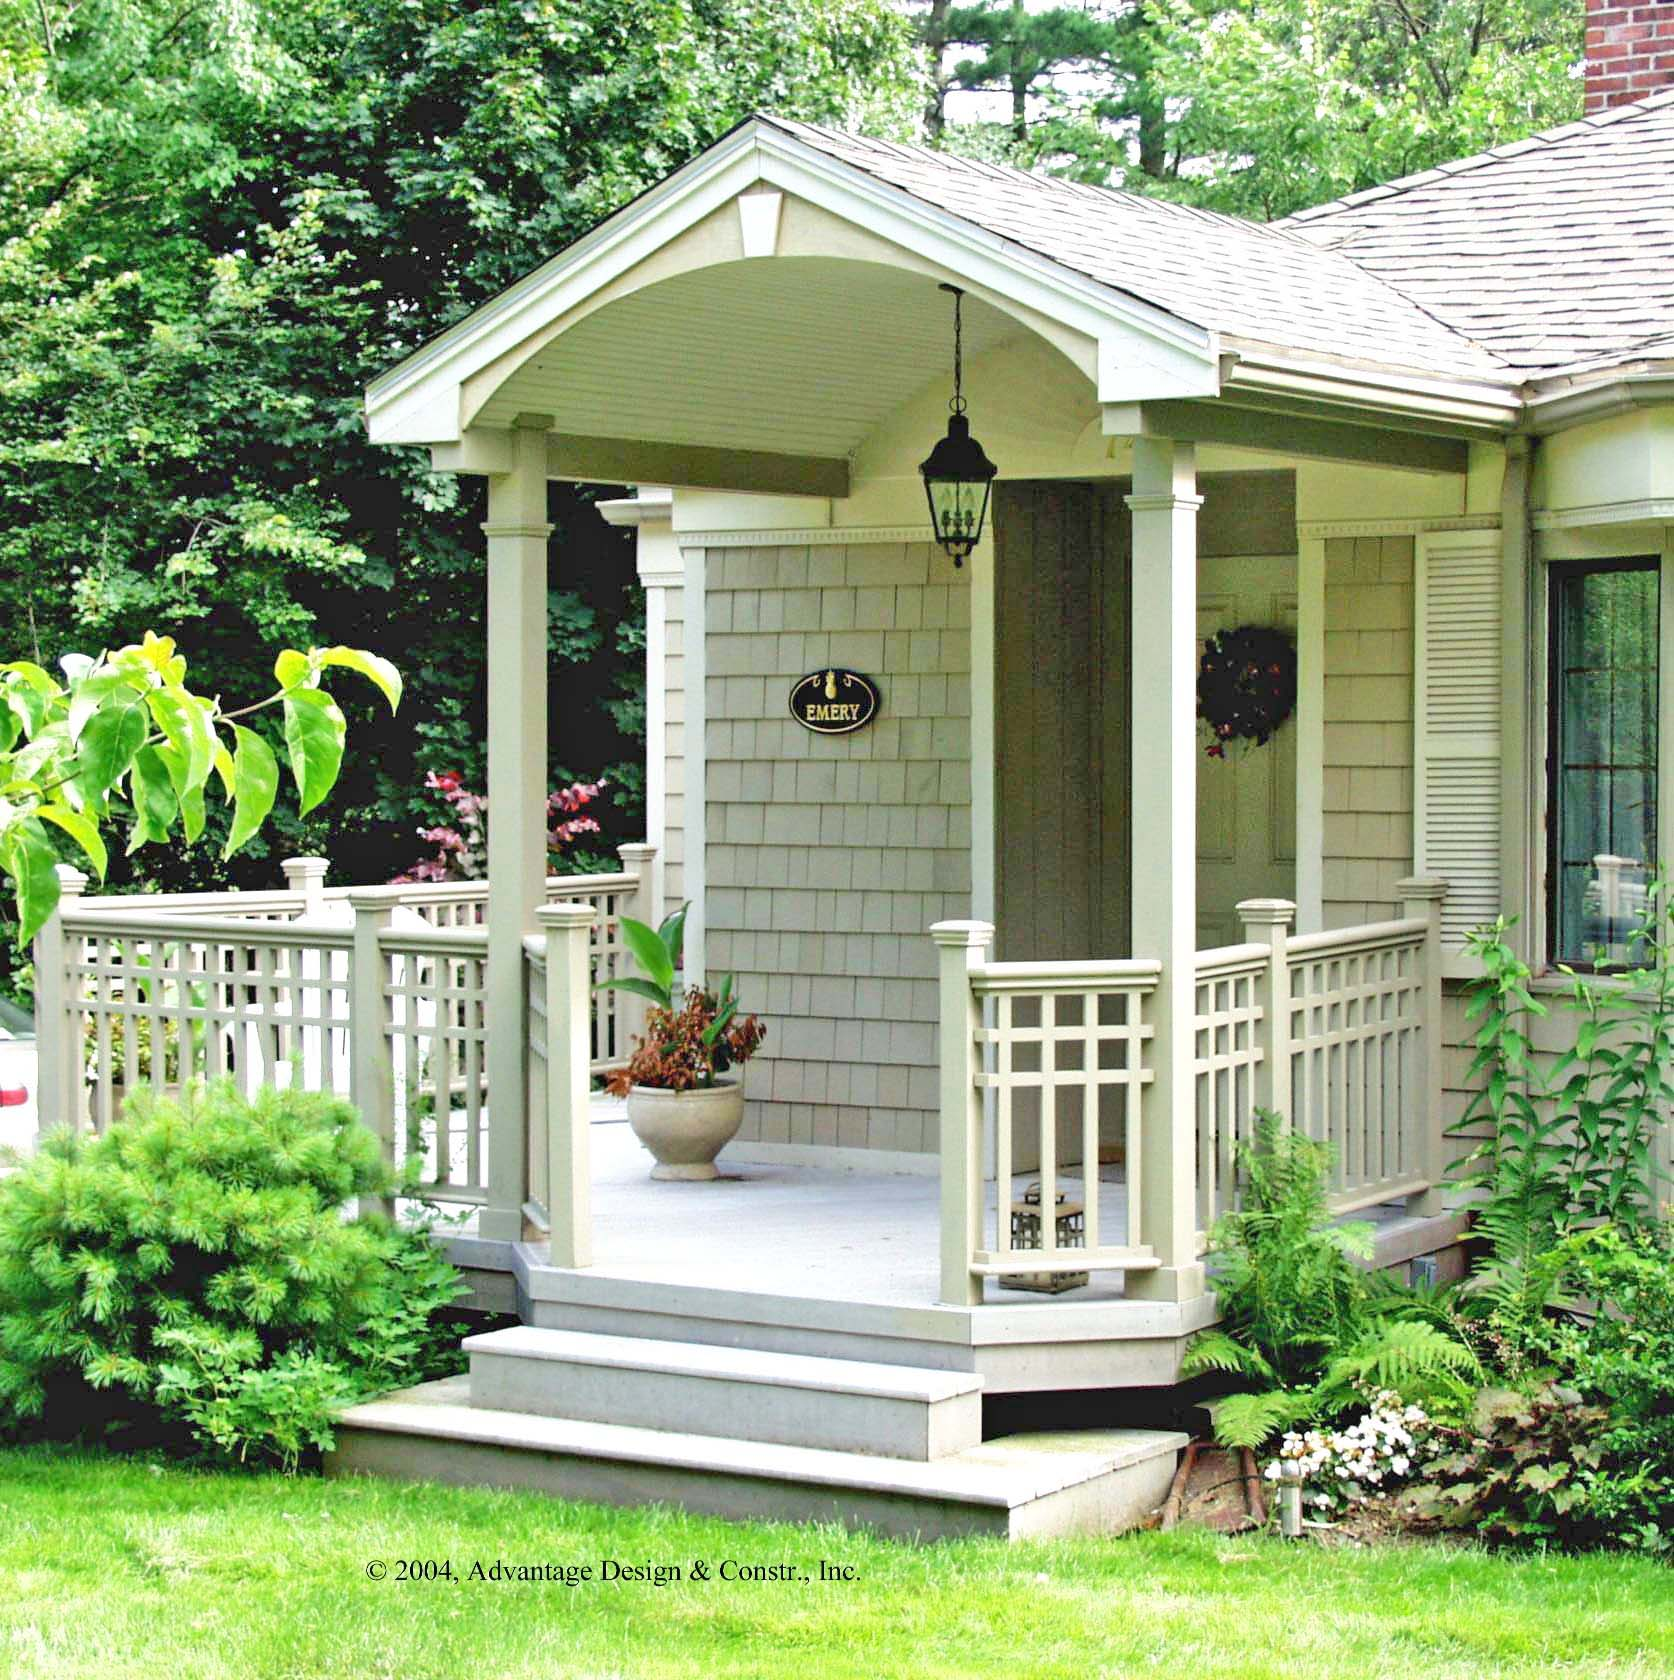 Decorating Ideas For A Small Front Porch Porches Ideas: Six Kinds Of Porches For Your Home